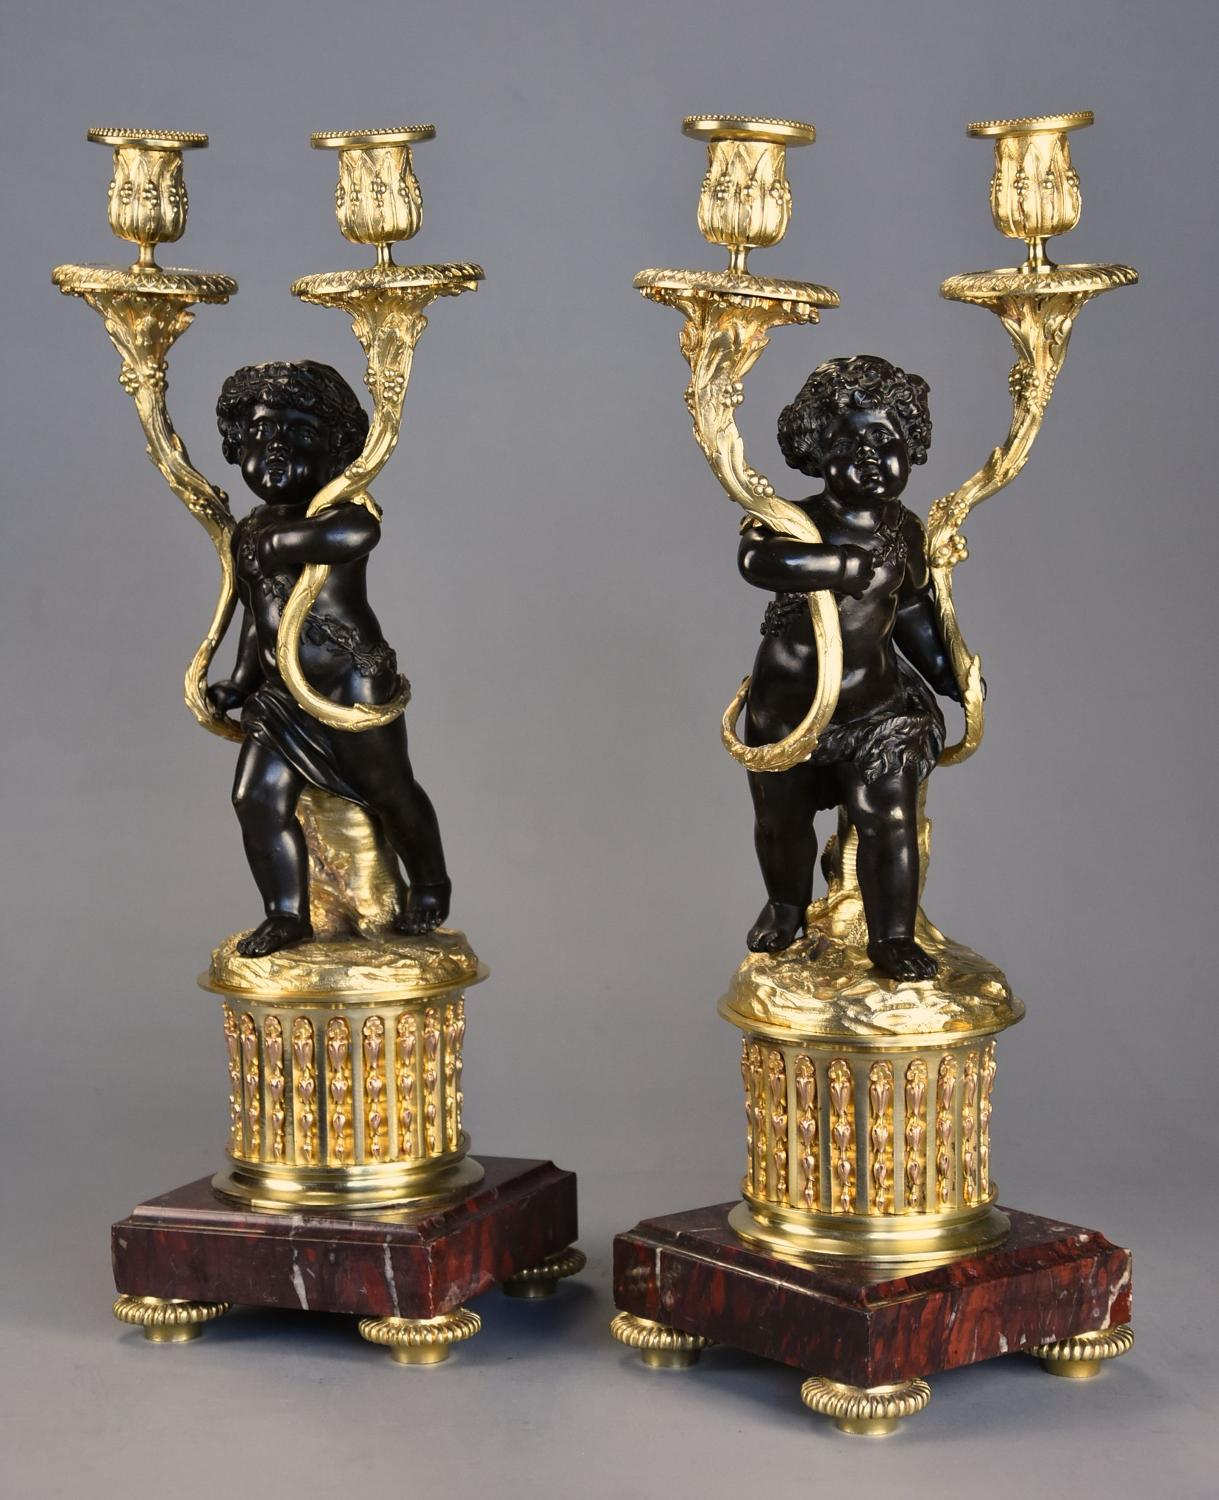 Pair of fine quality French 19thc ormolu & bronze candelabra